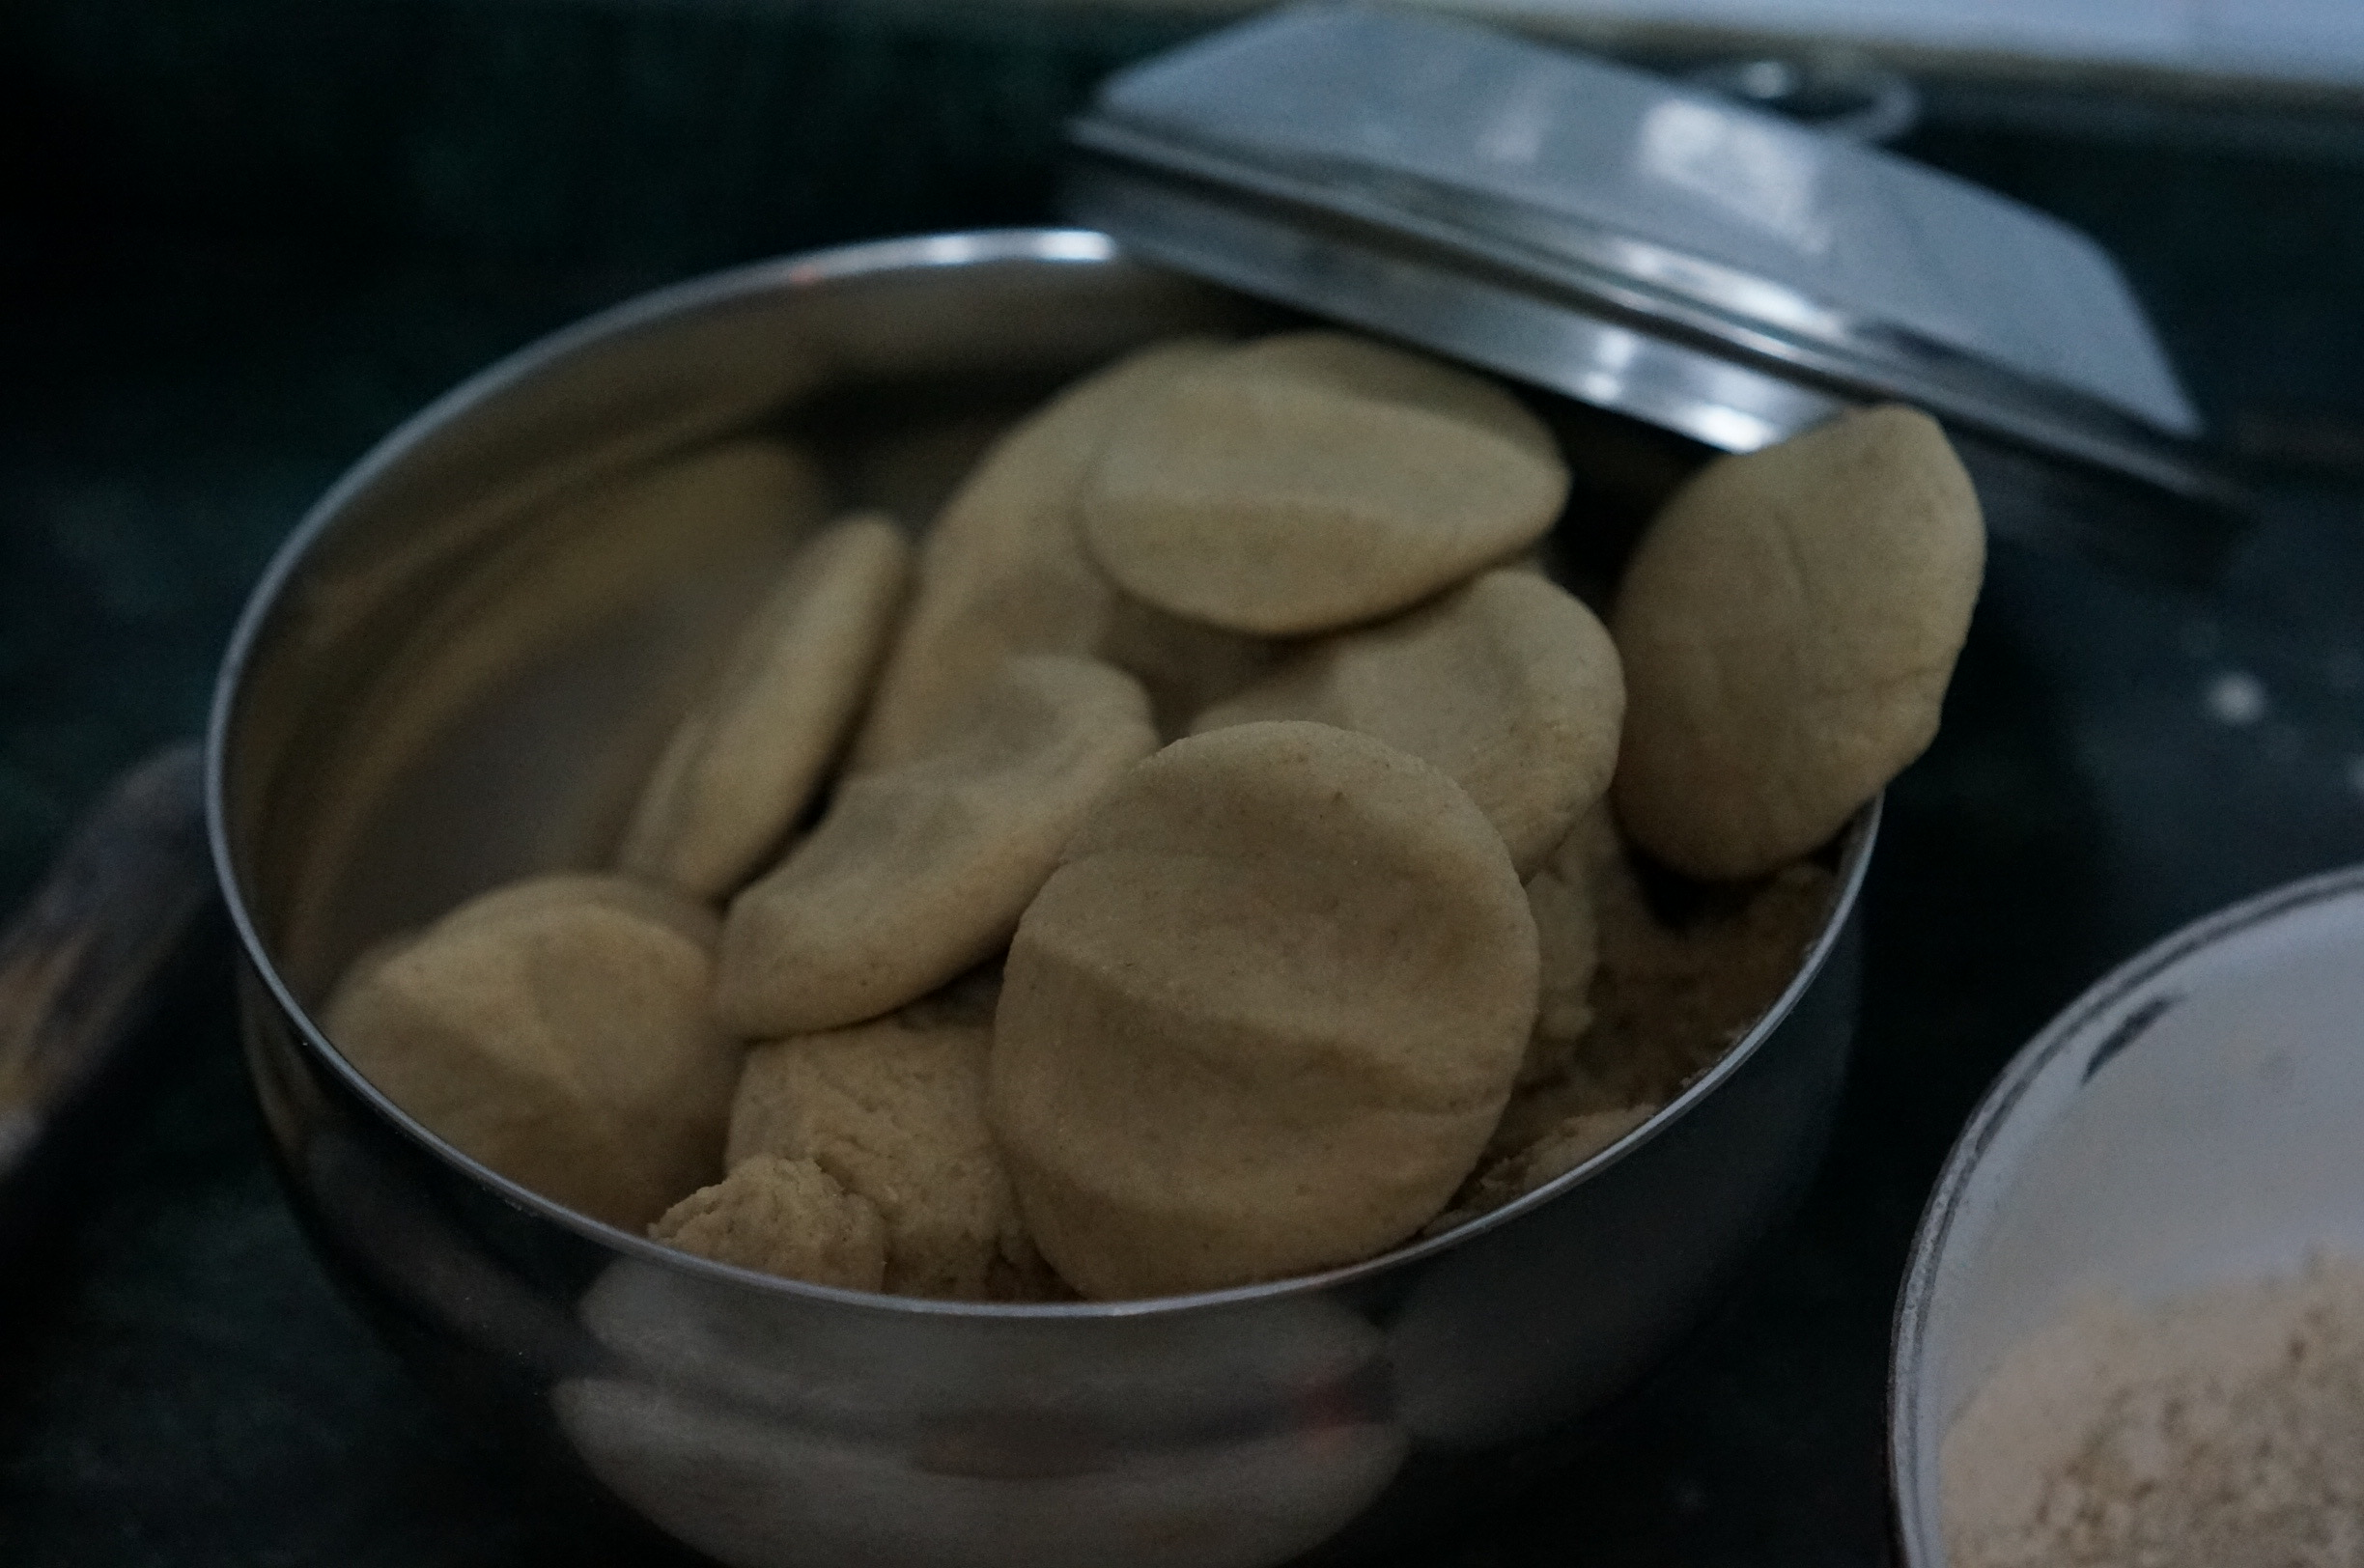 The Puri / Poori dough were made from wheat flour. These were prepare for deep-fried.